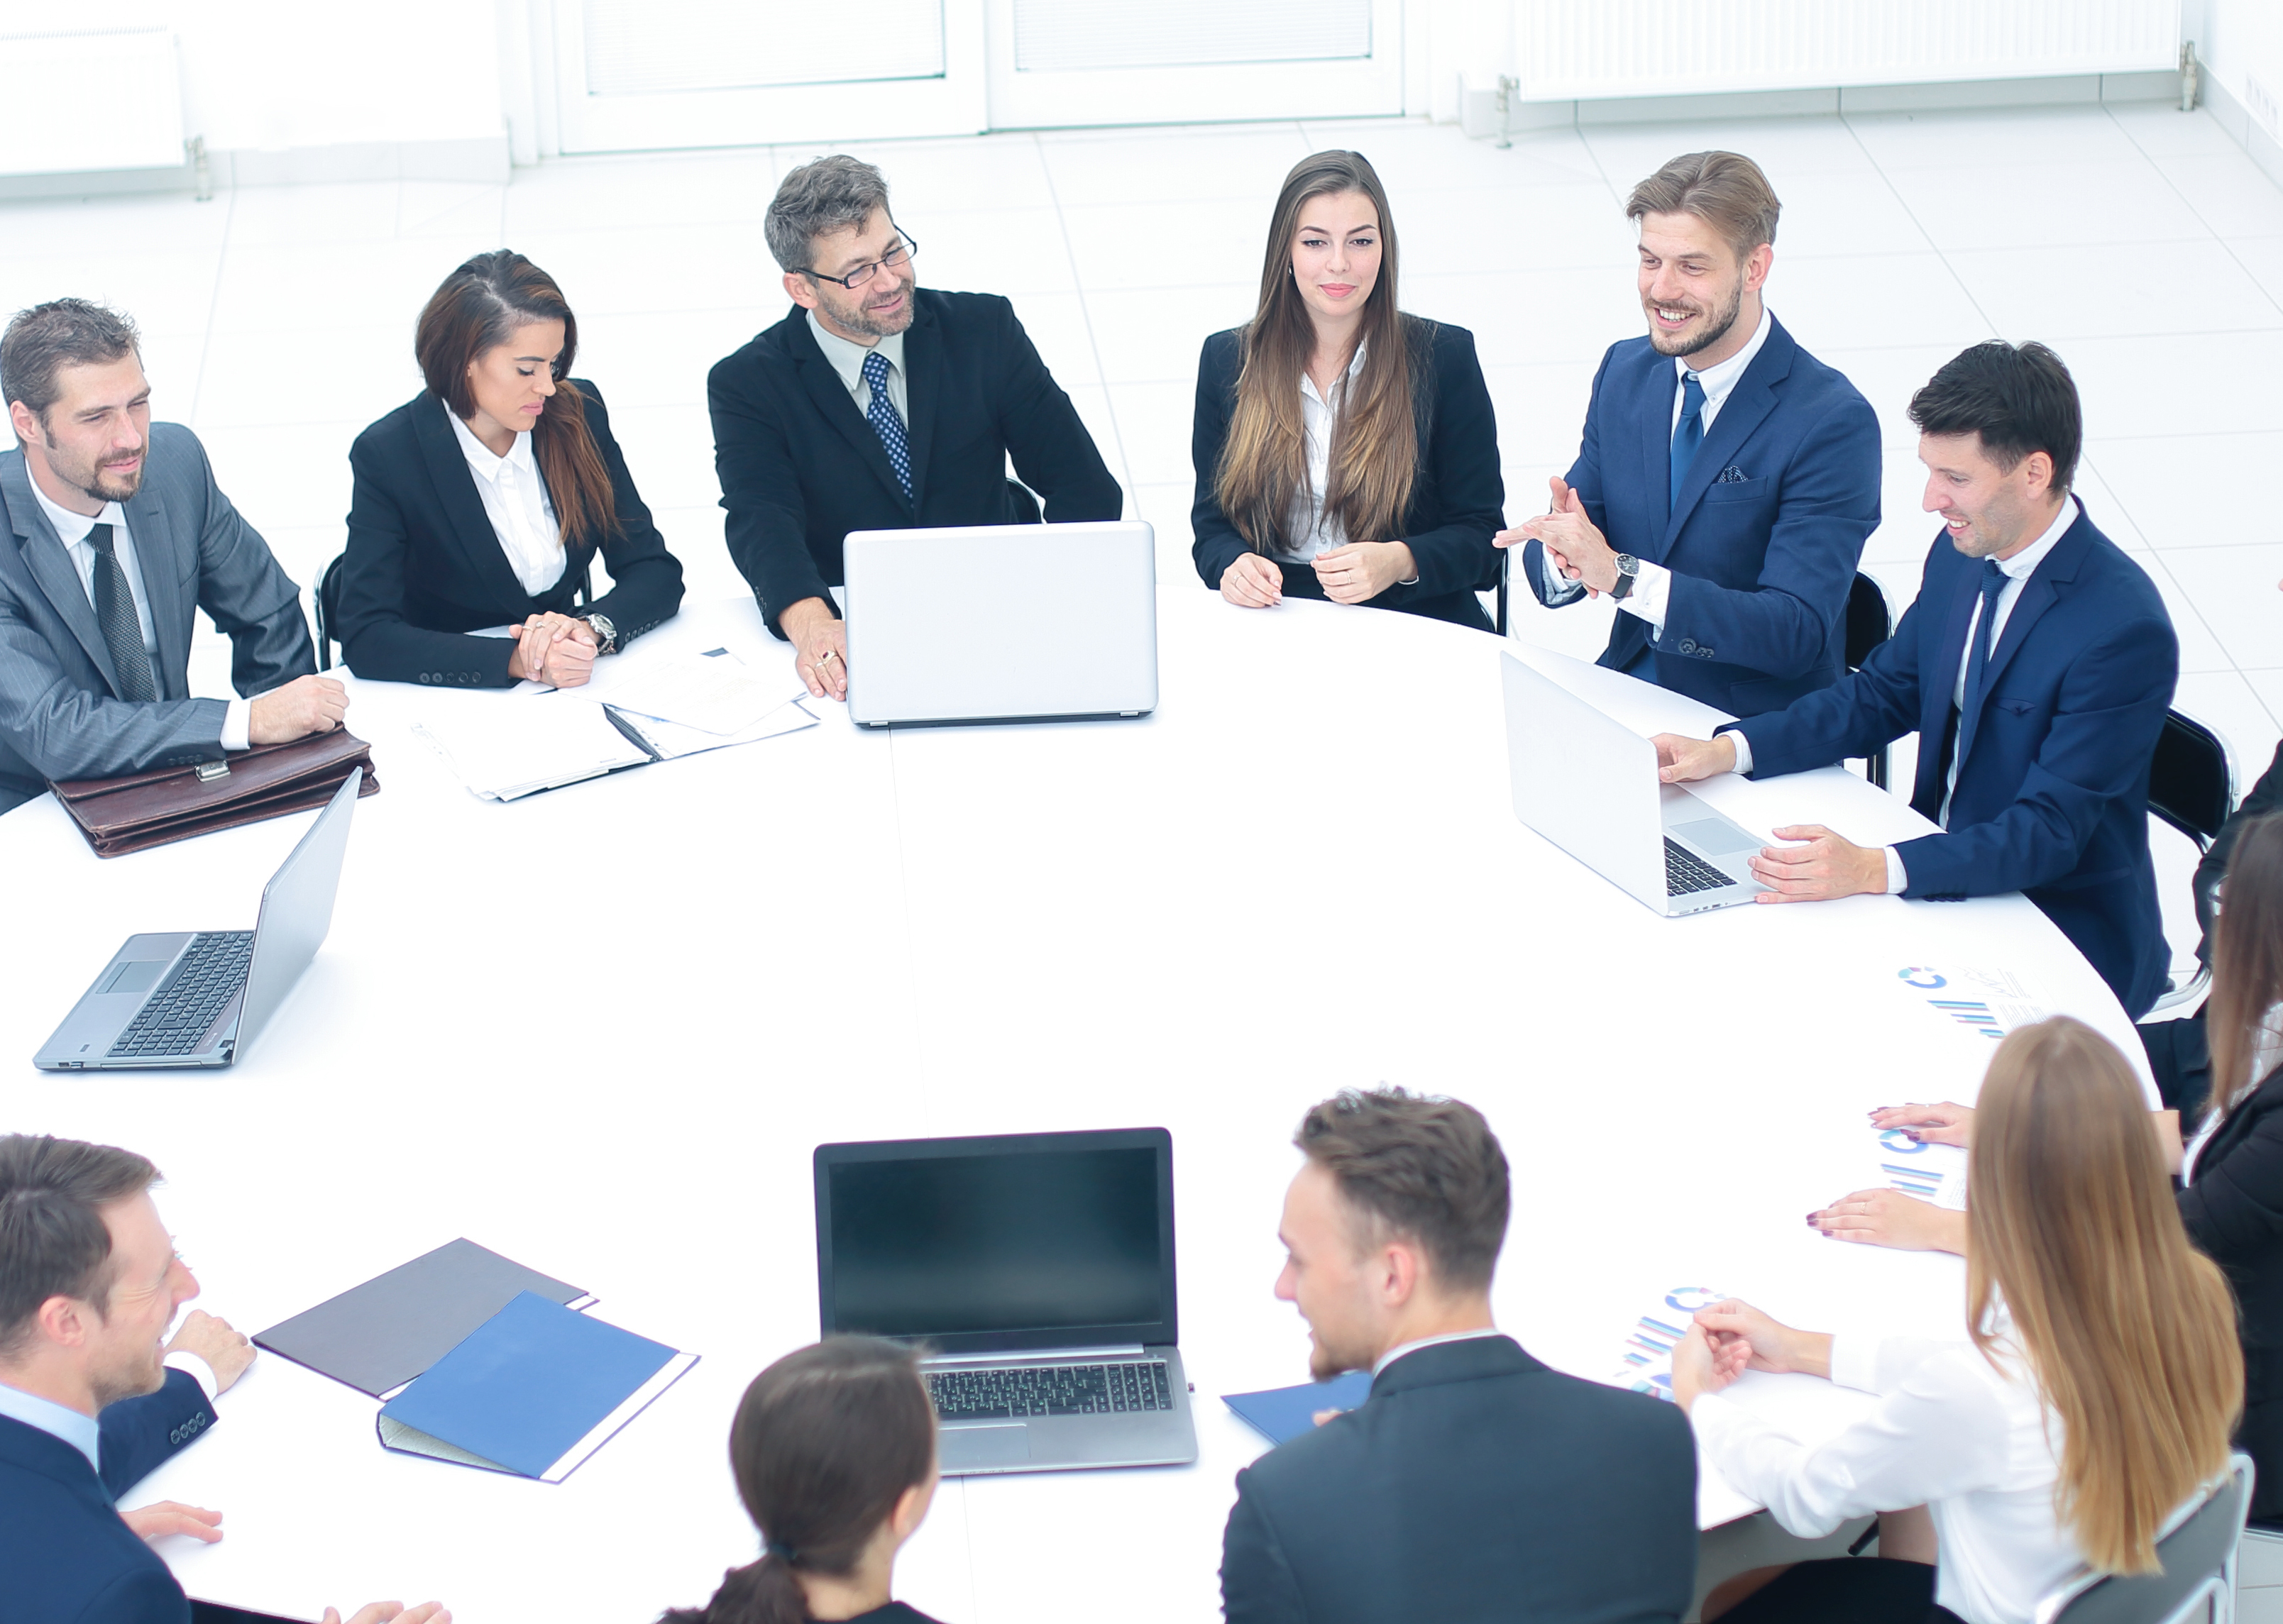 boss gathered his team for a round table to discuss a new projec